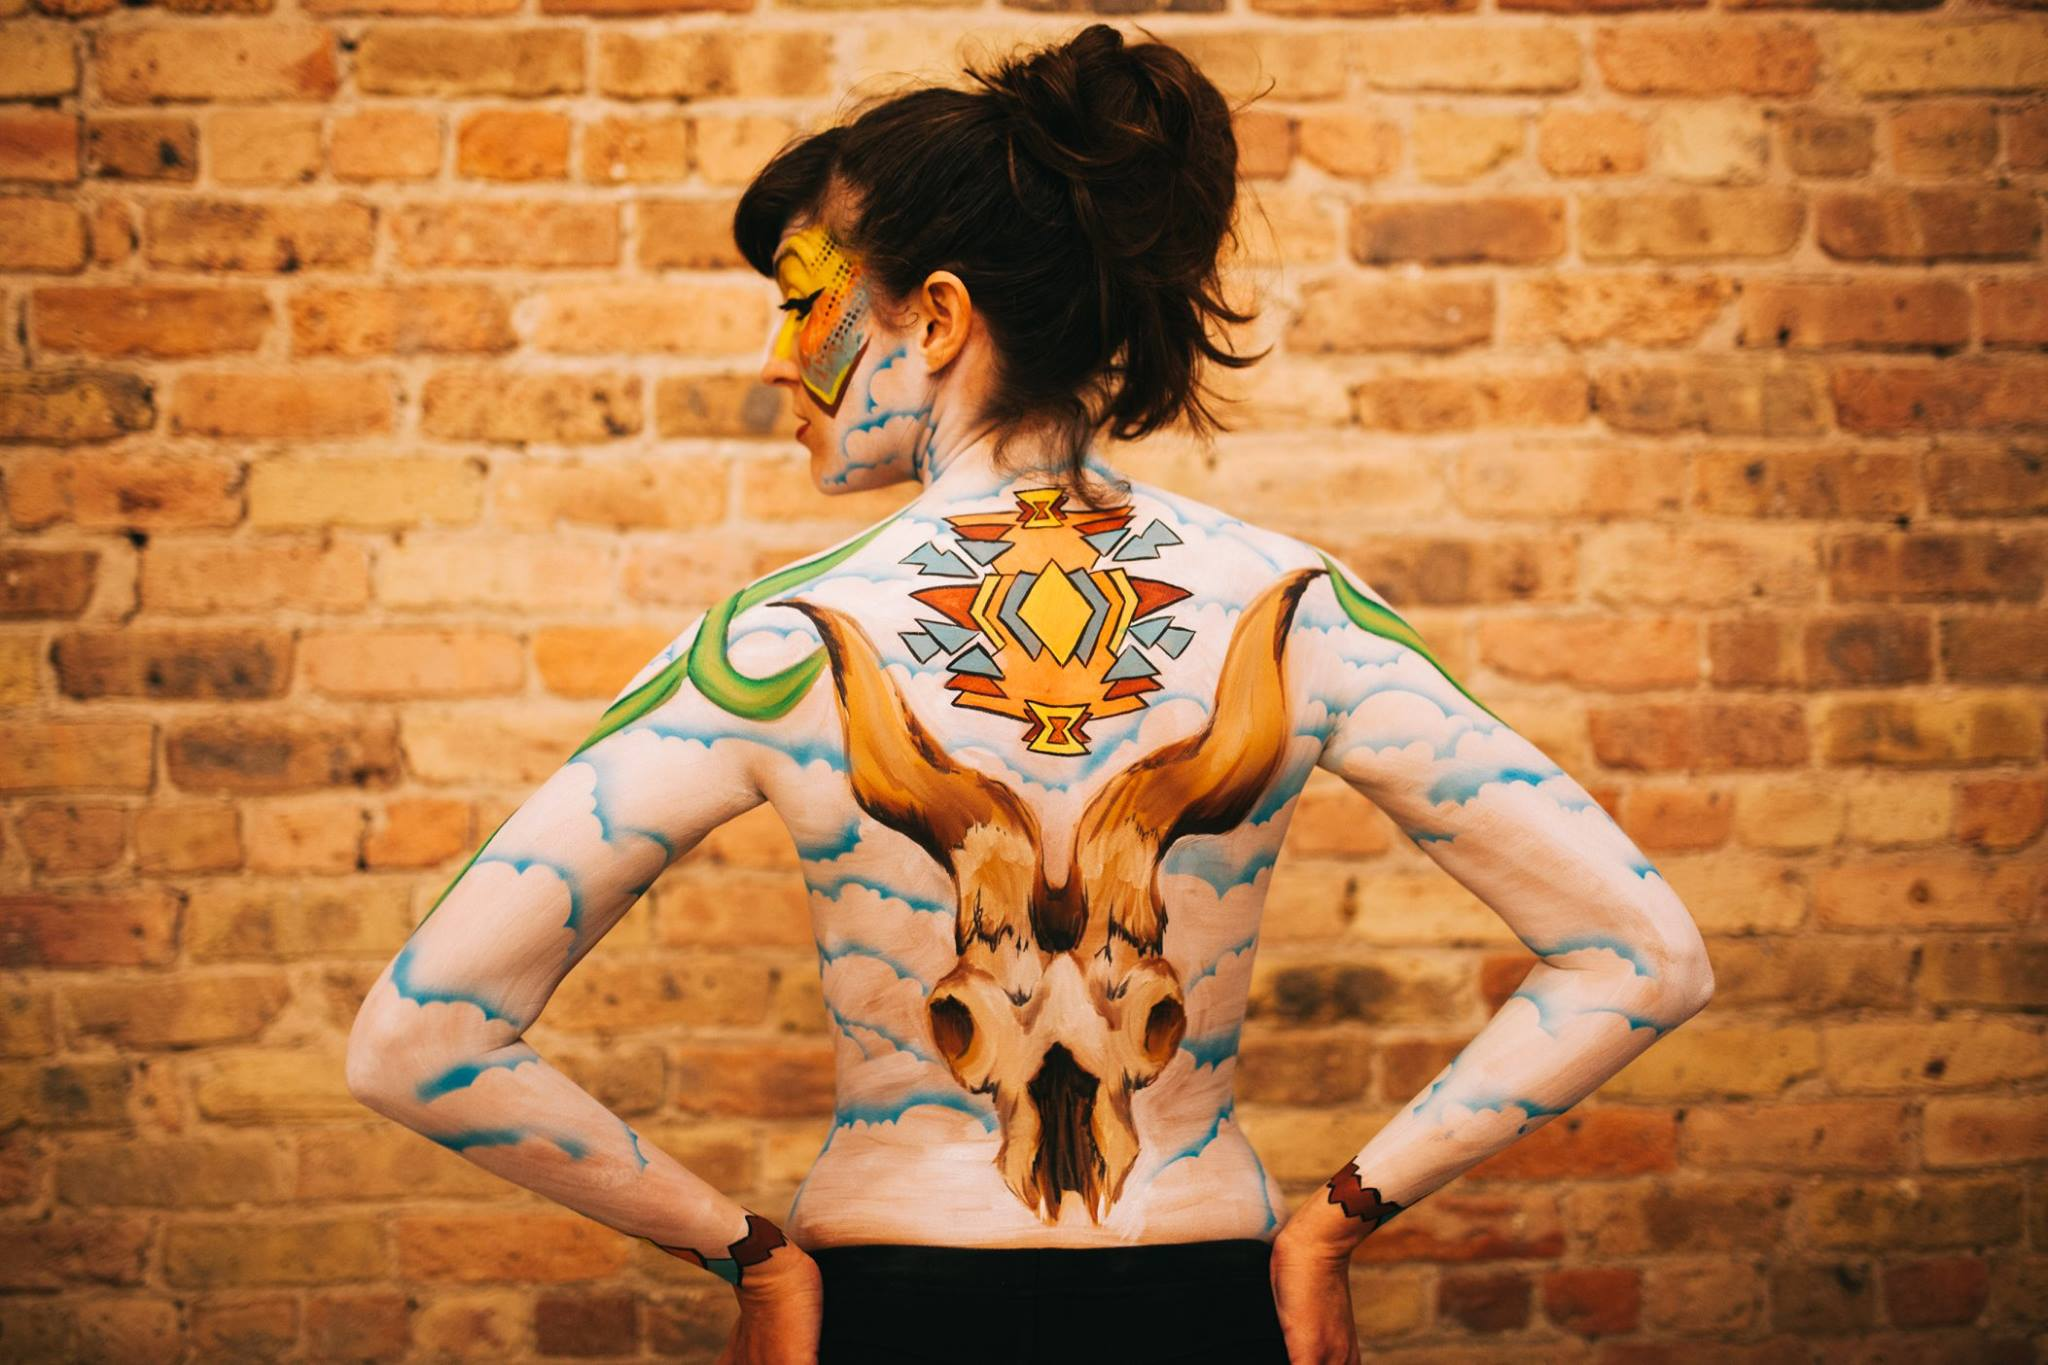 Georgia O'Keeffe tribute body paint